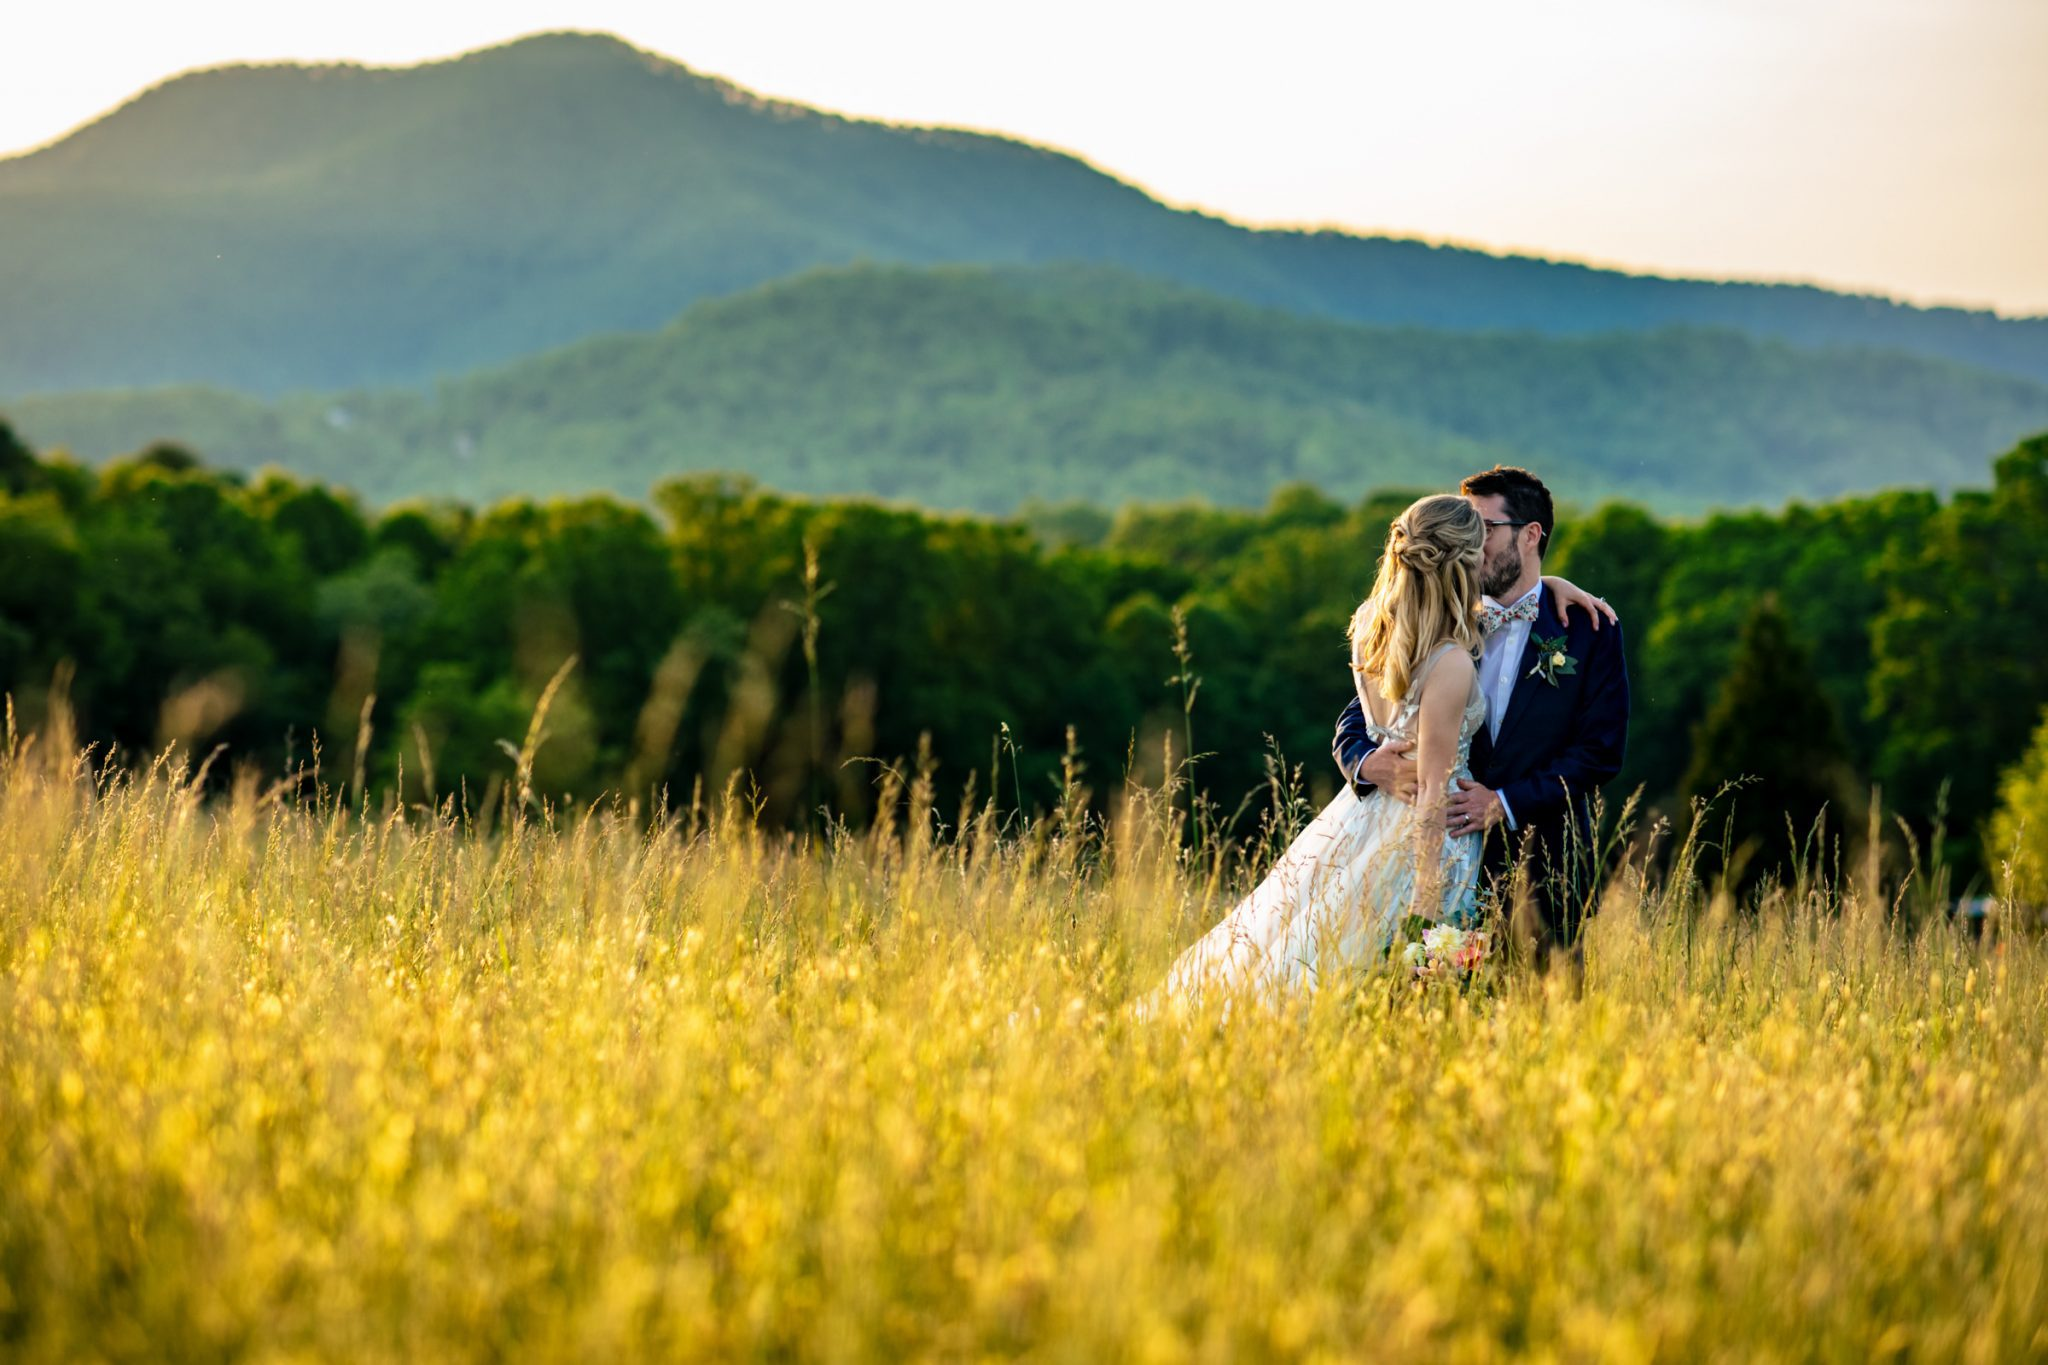 bride and groom kissing in a field with a mountain in the background